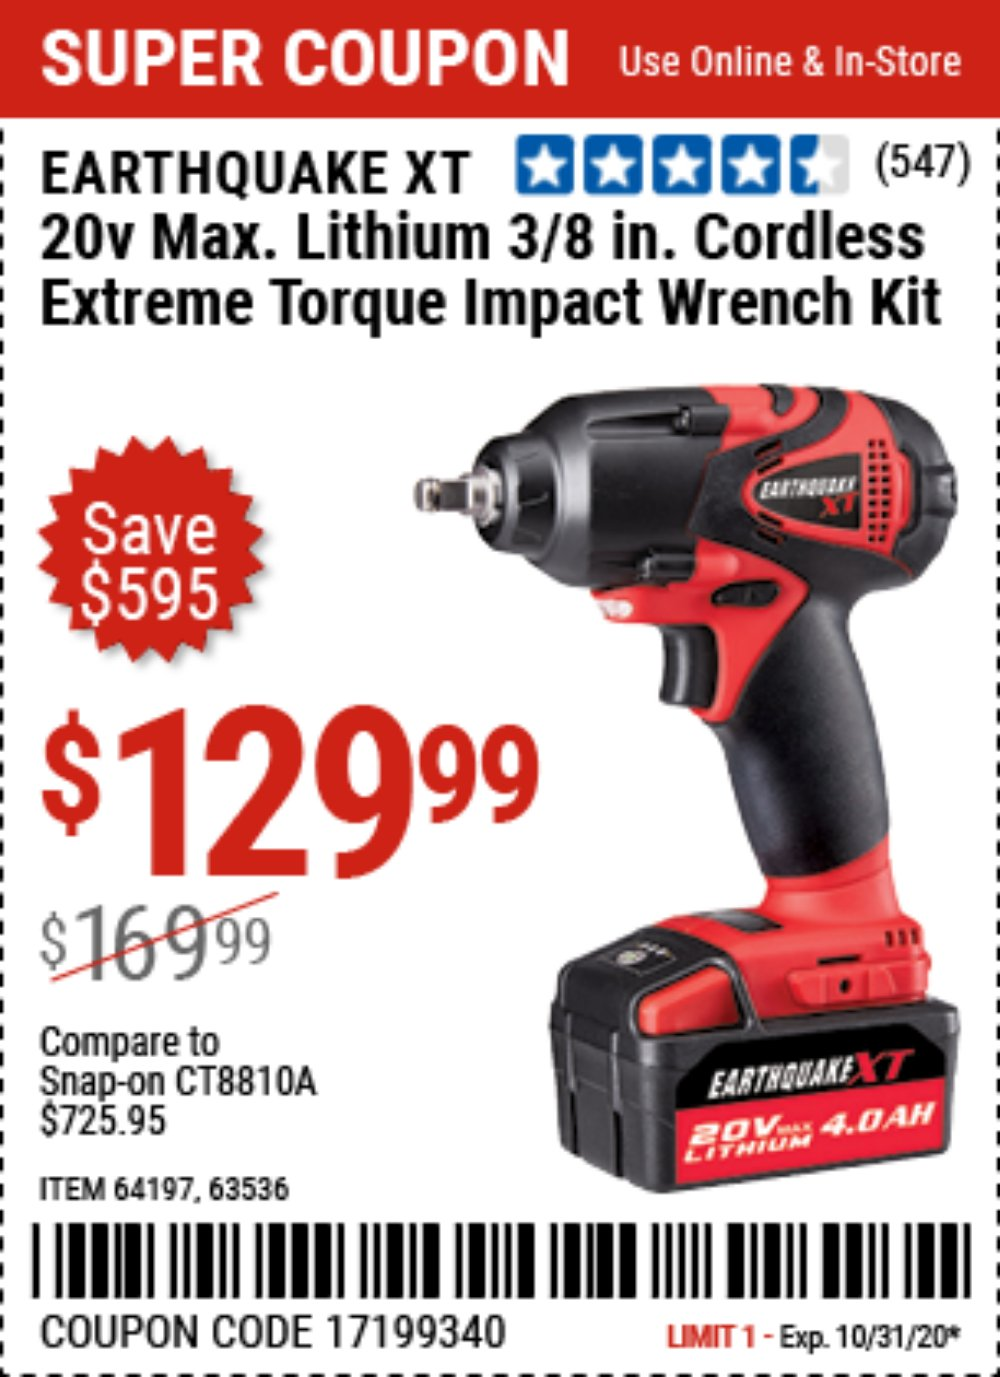 Harbor Freight Coupon, HF Coupons - 20 Volt Lithium Cordless 3/8